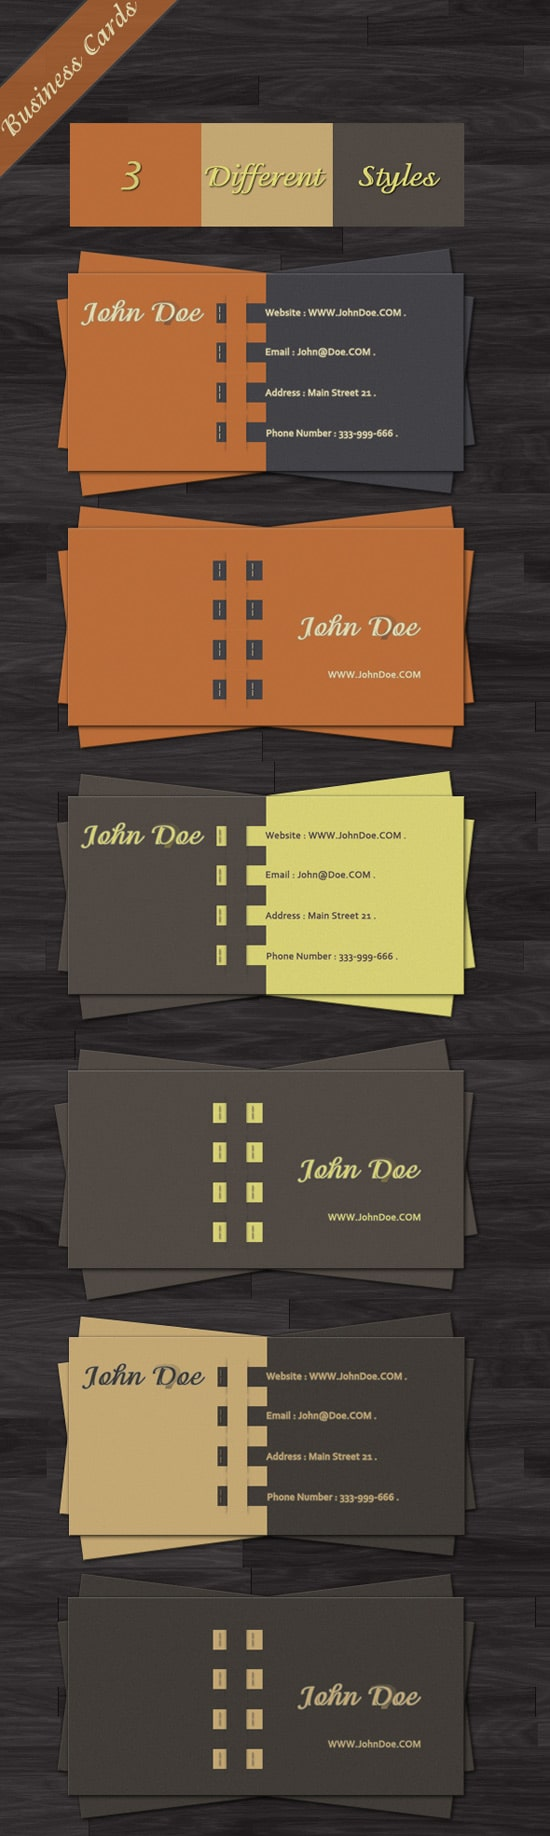 Free Business Card Templates Designrfixcom - Best business card templates free